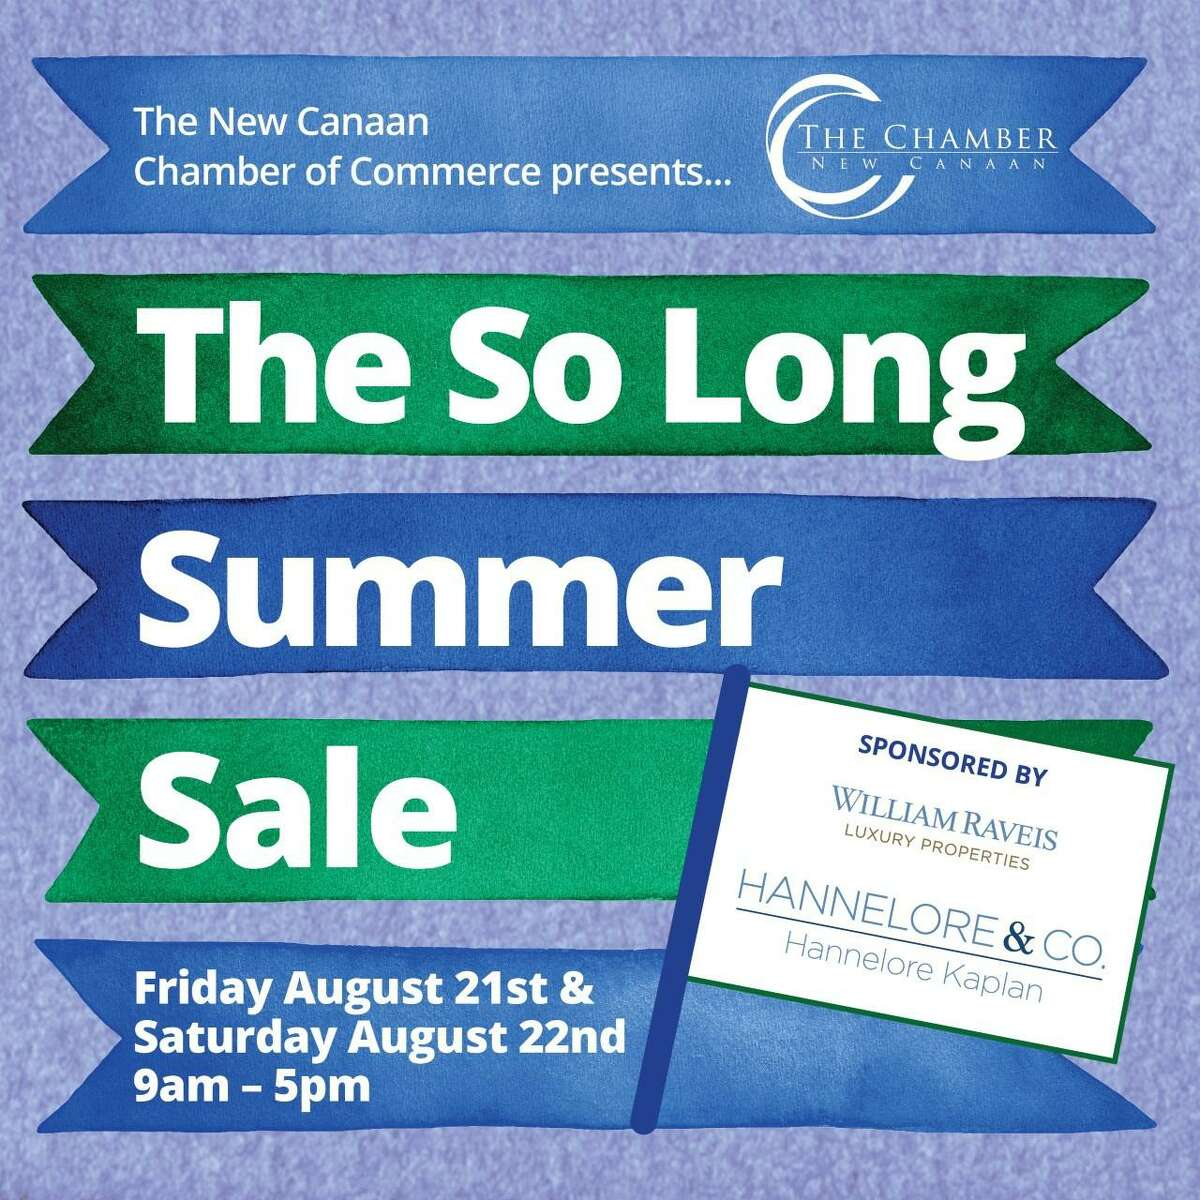 """The New Canaan Chamber of Commerce is going to hold a """"So Long To Summer Sale,"""" in downtown New Canaan this Friday, Aug. 21, and Saturday, Aug. 22, from 9 a.m. to 5 p.m. The event will be modified with hand sanitizer, face masks, and six-foot social distancing, to prevent the spread of COVID-19, a disease, amid the coronavirus pandemic. The virus causes the disease."""